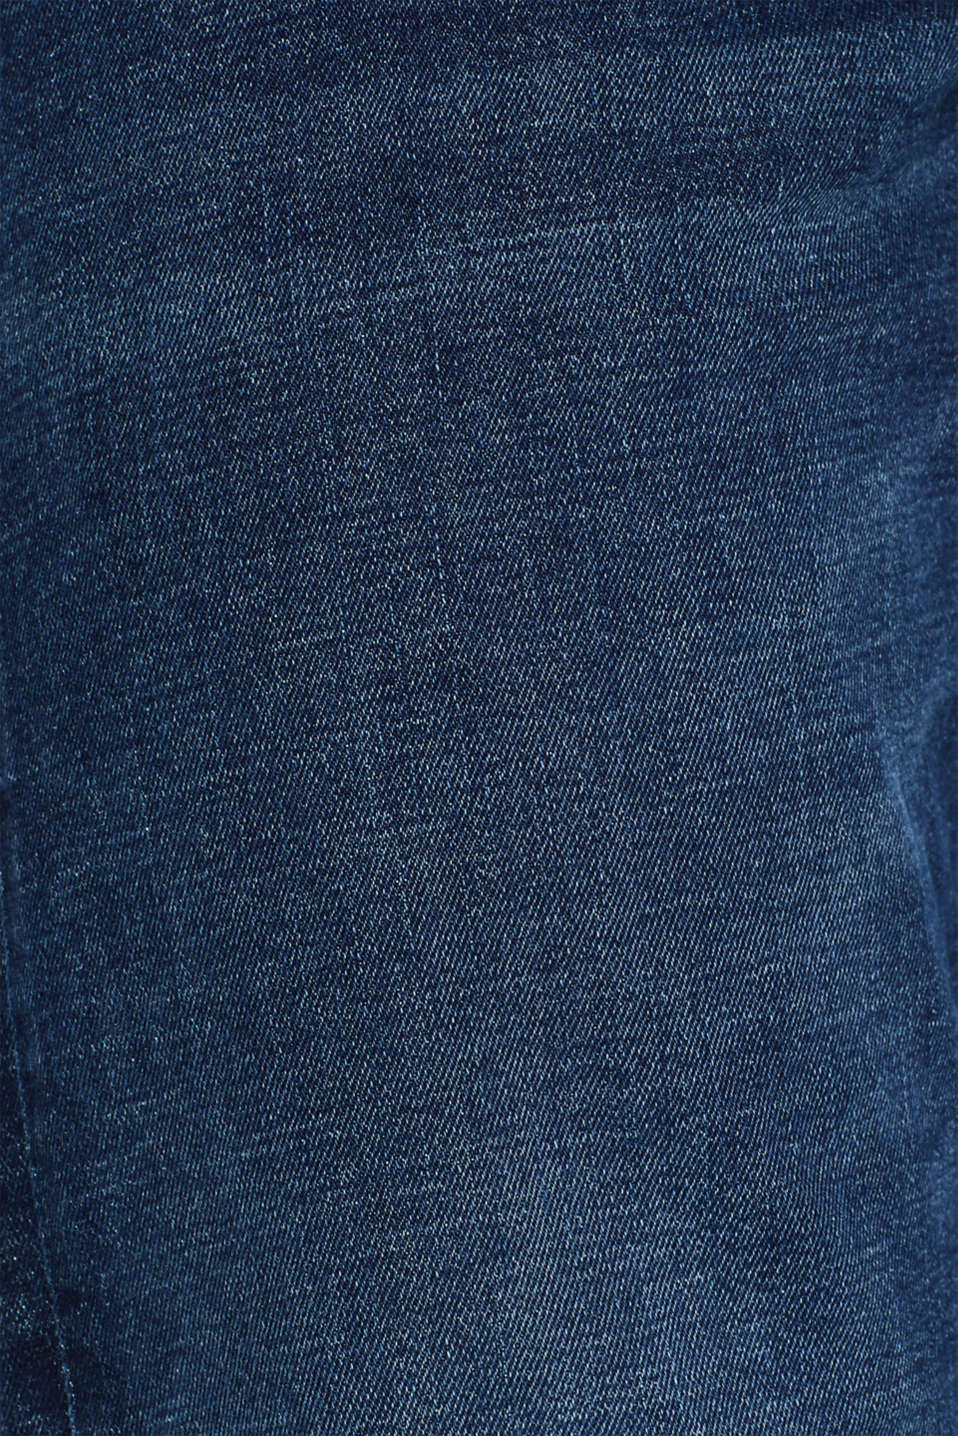 Pants denim, BLUE DARK WASH, detail image number 4